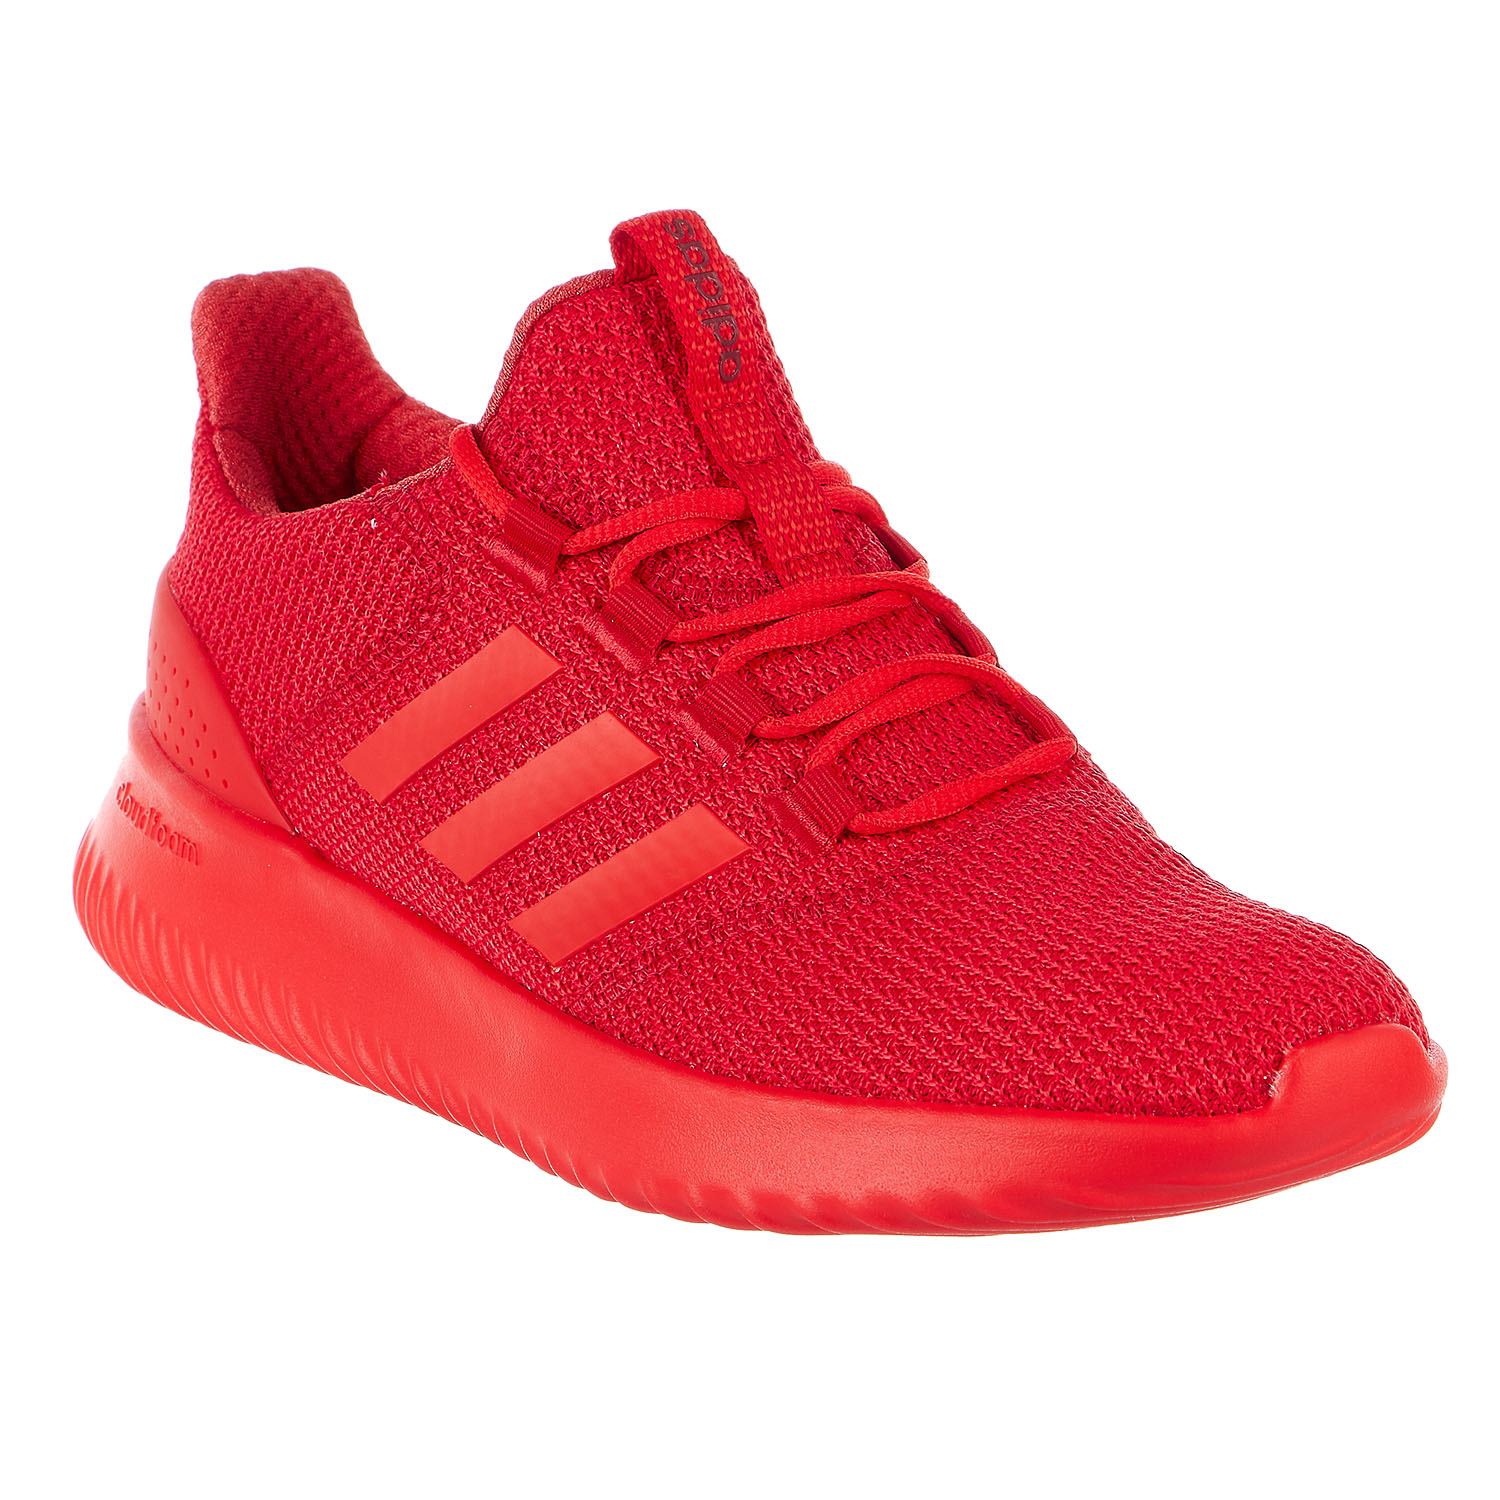 adidas cloudfoam red shoes